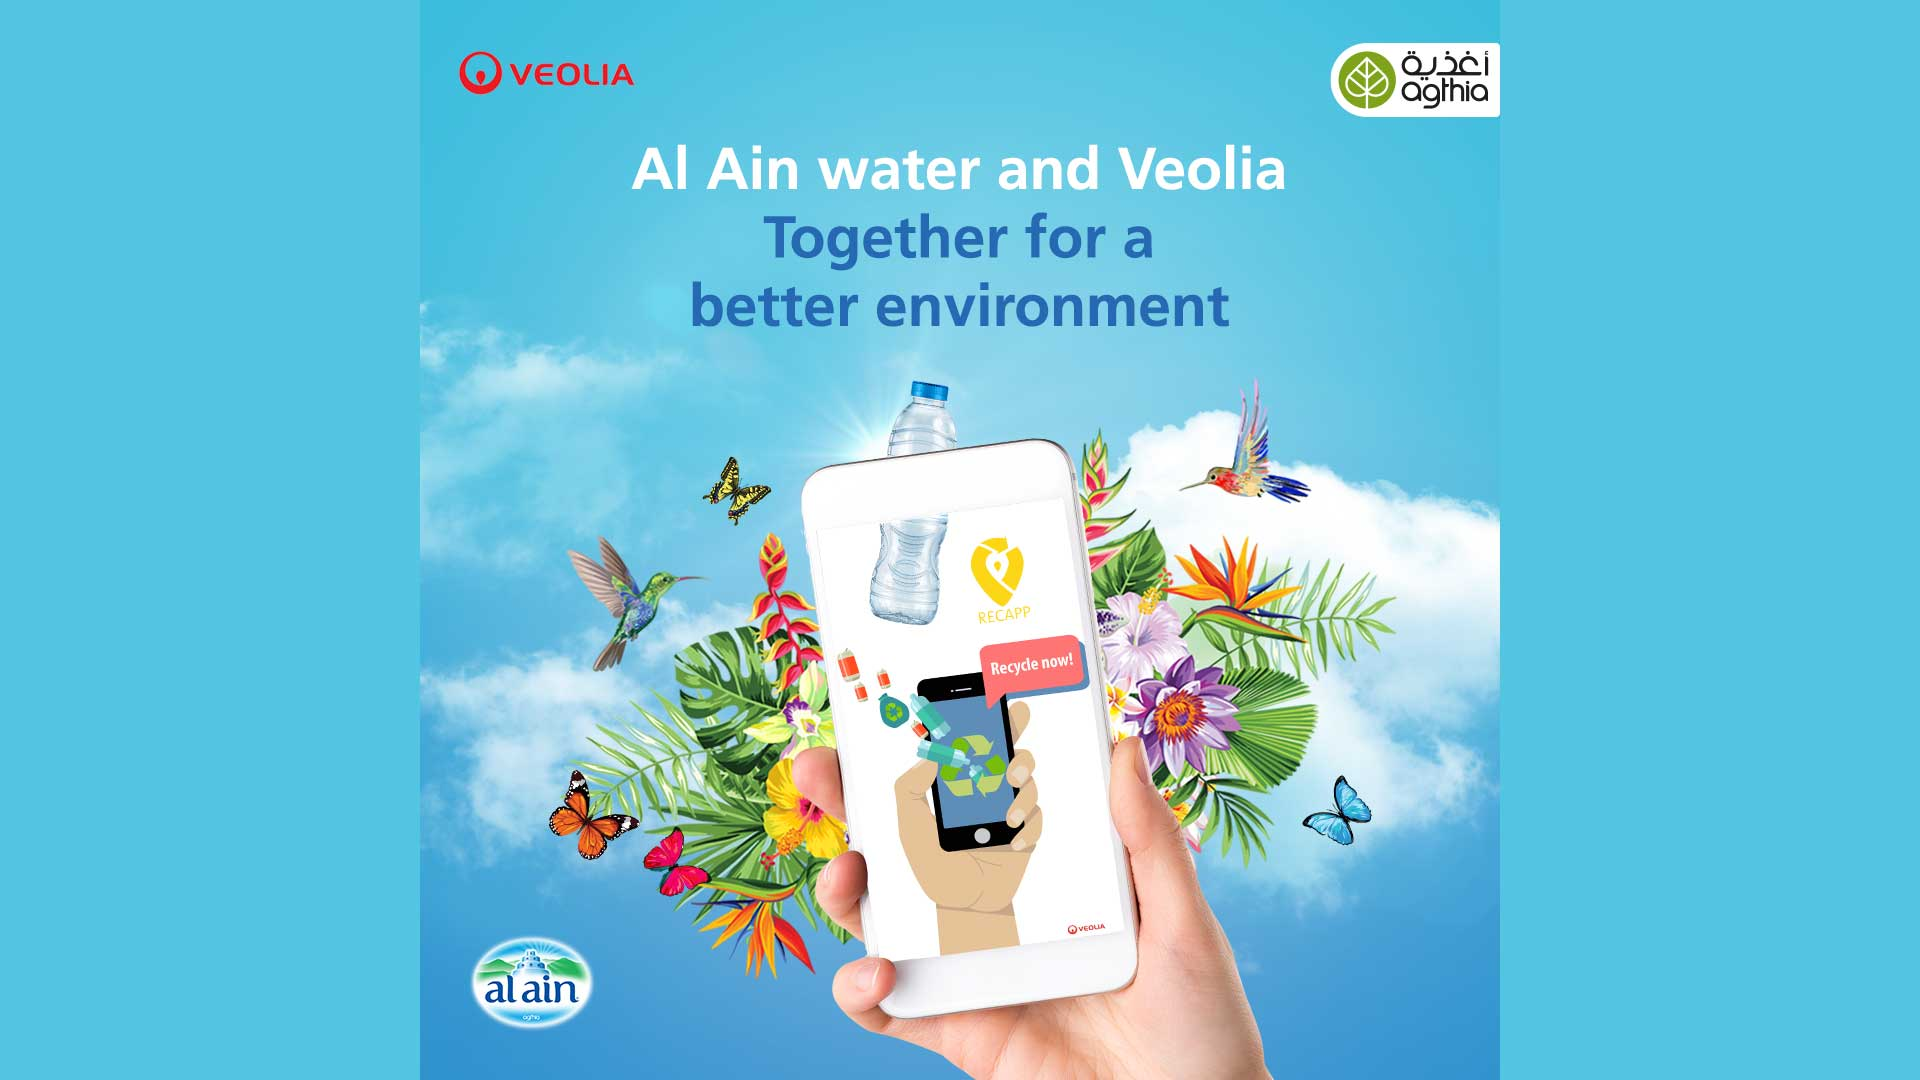 Agthia And Veolia Reinforce Their Commitment for A More Circular Economy In The UAE